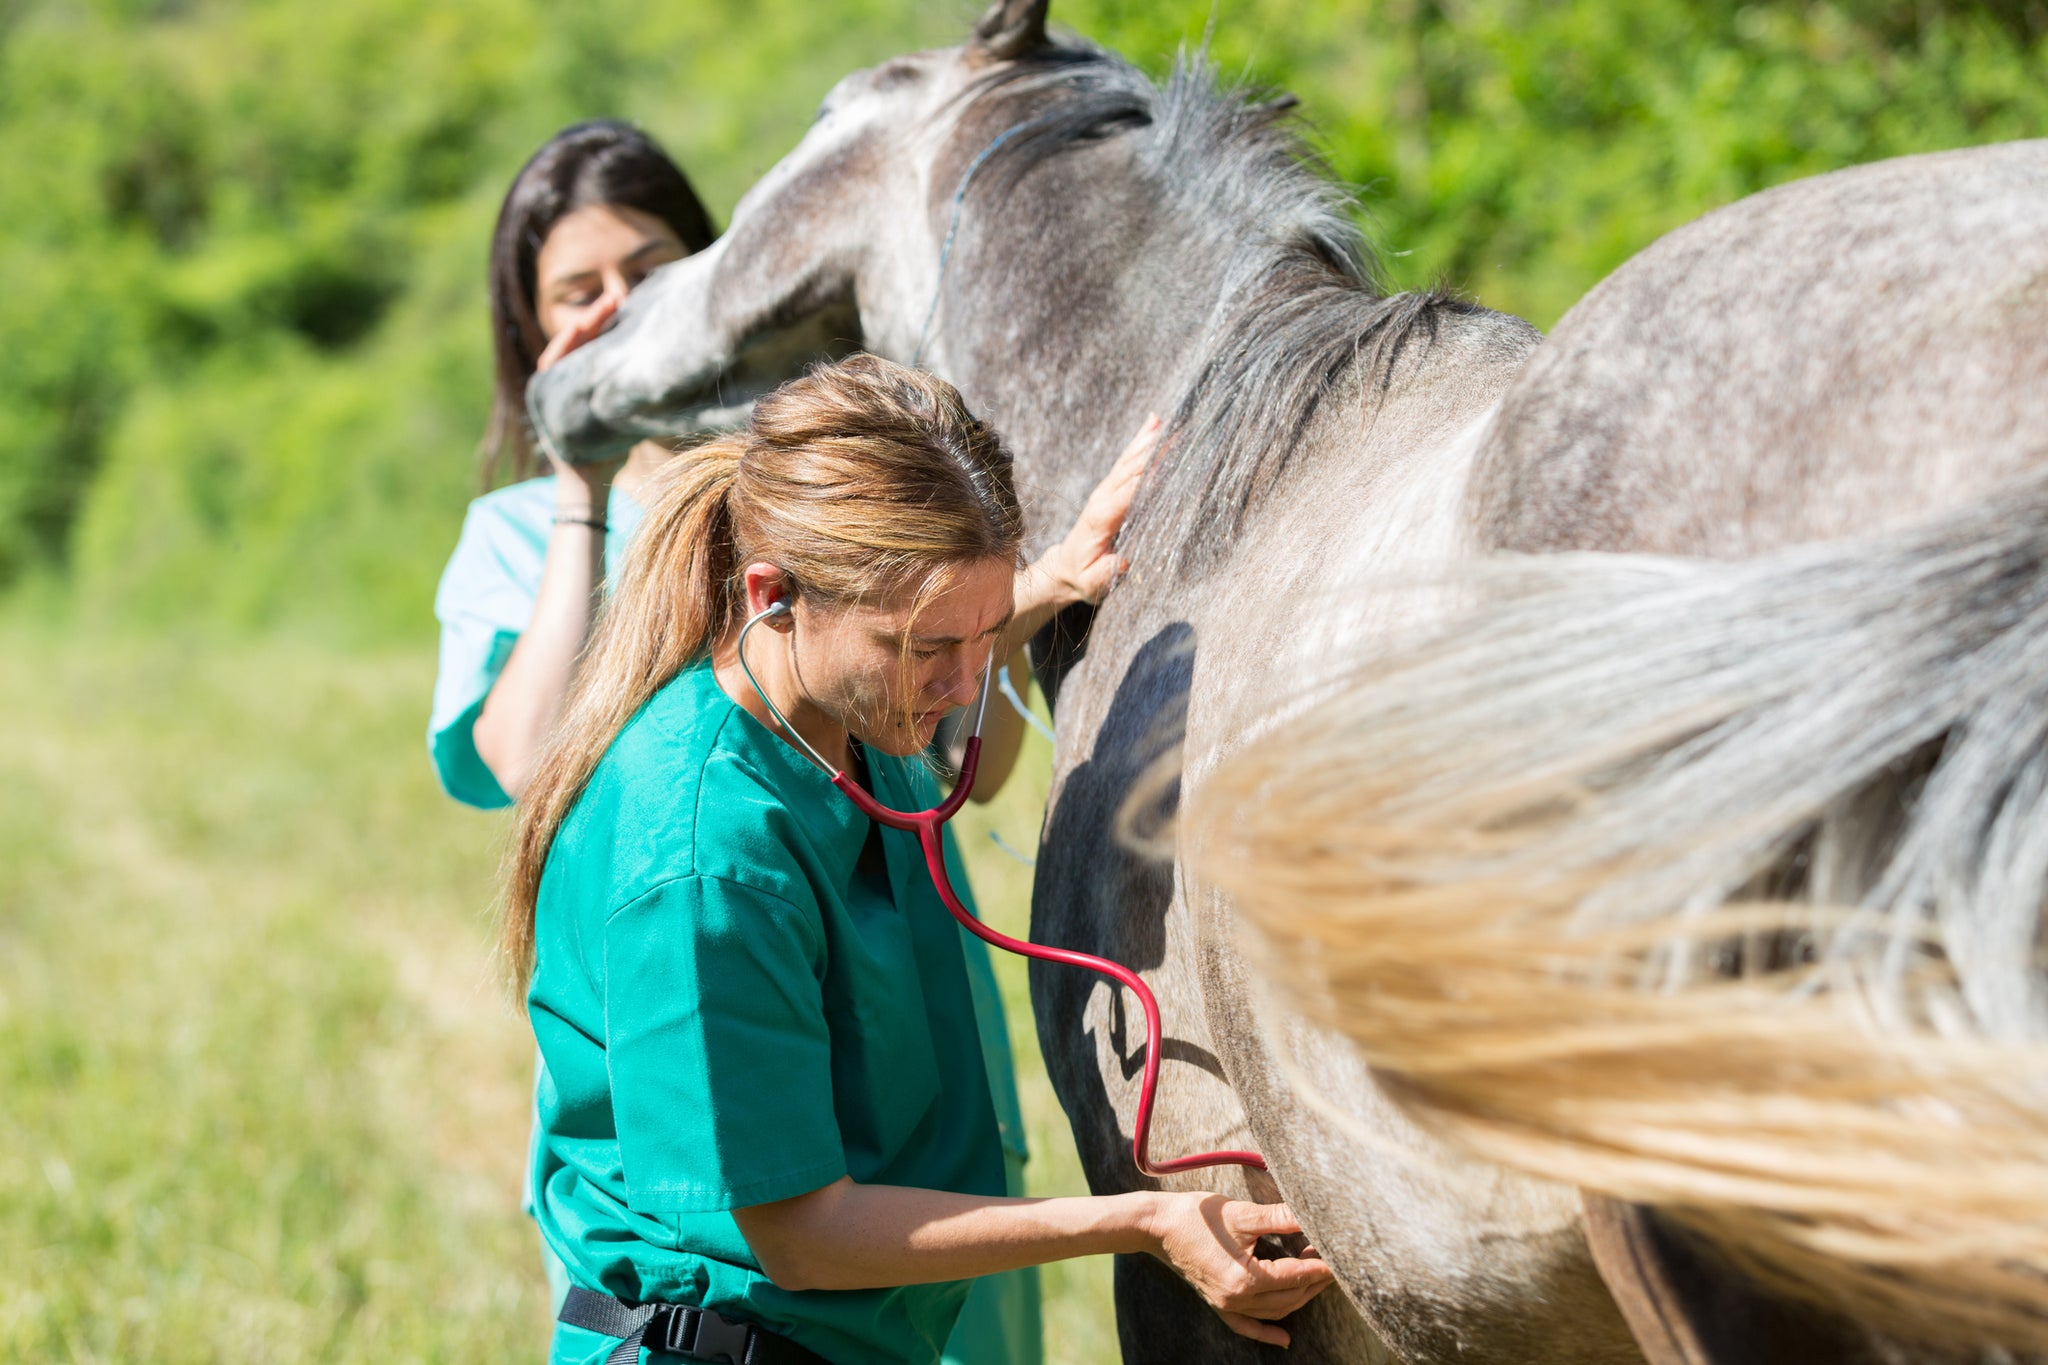 Equine Asthma: A new term for an old problem